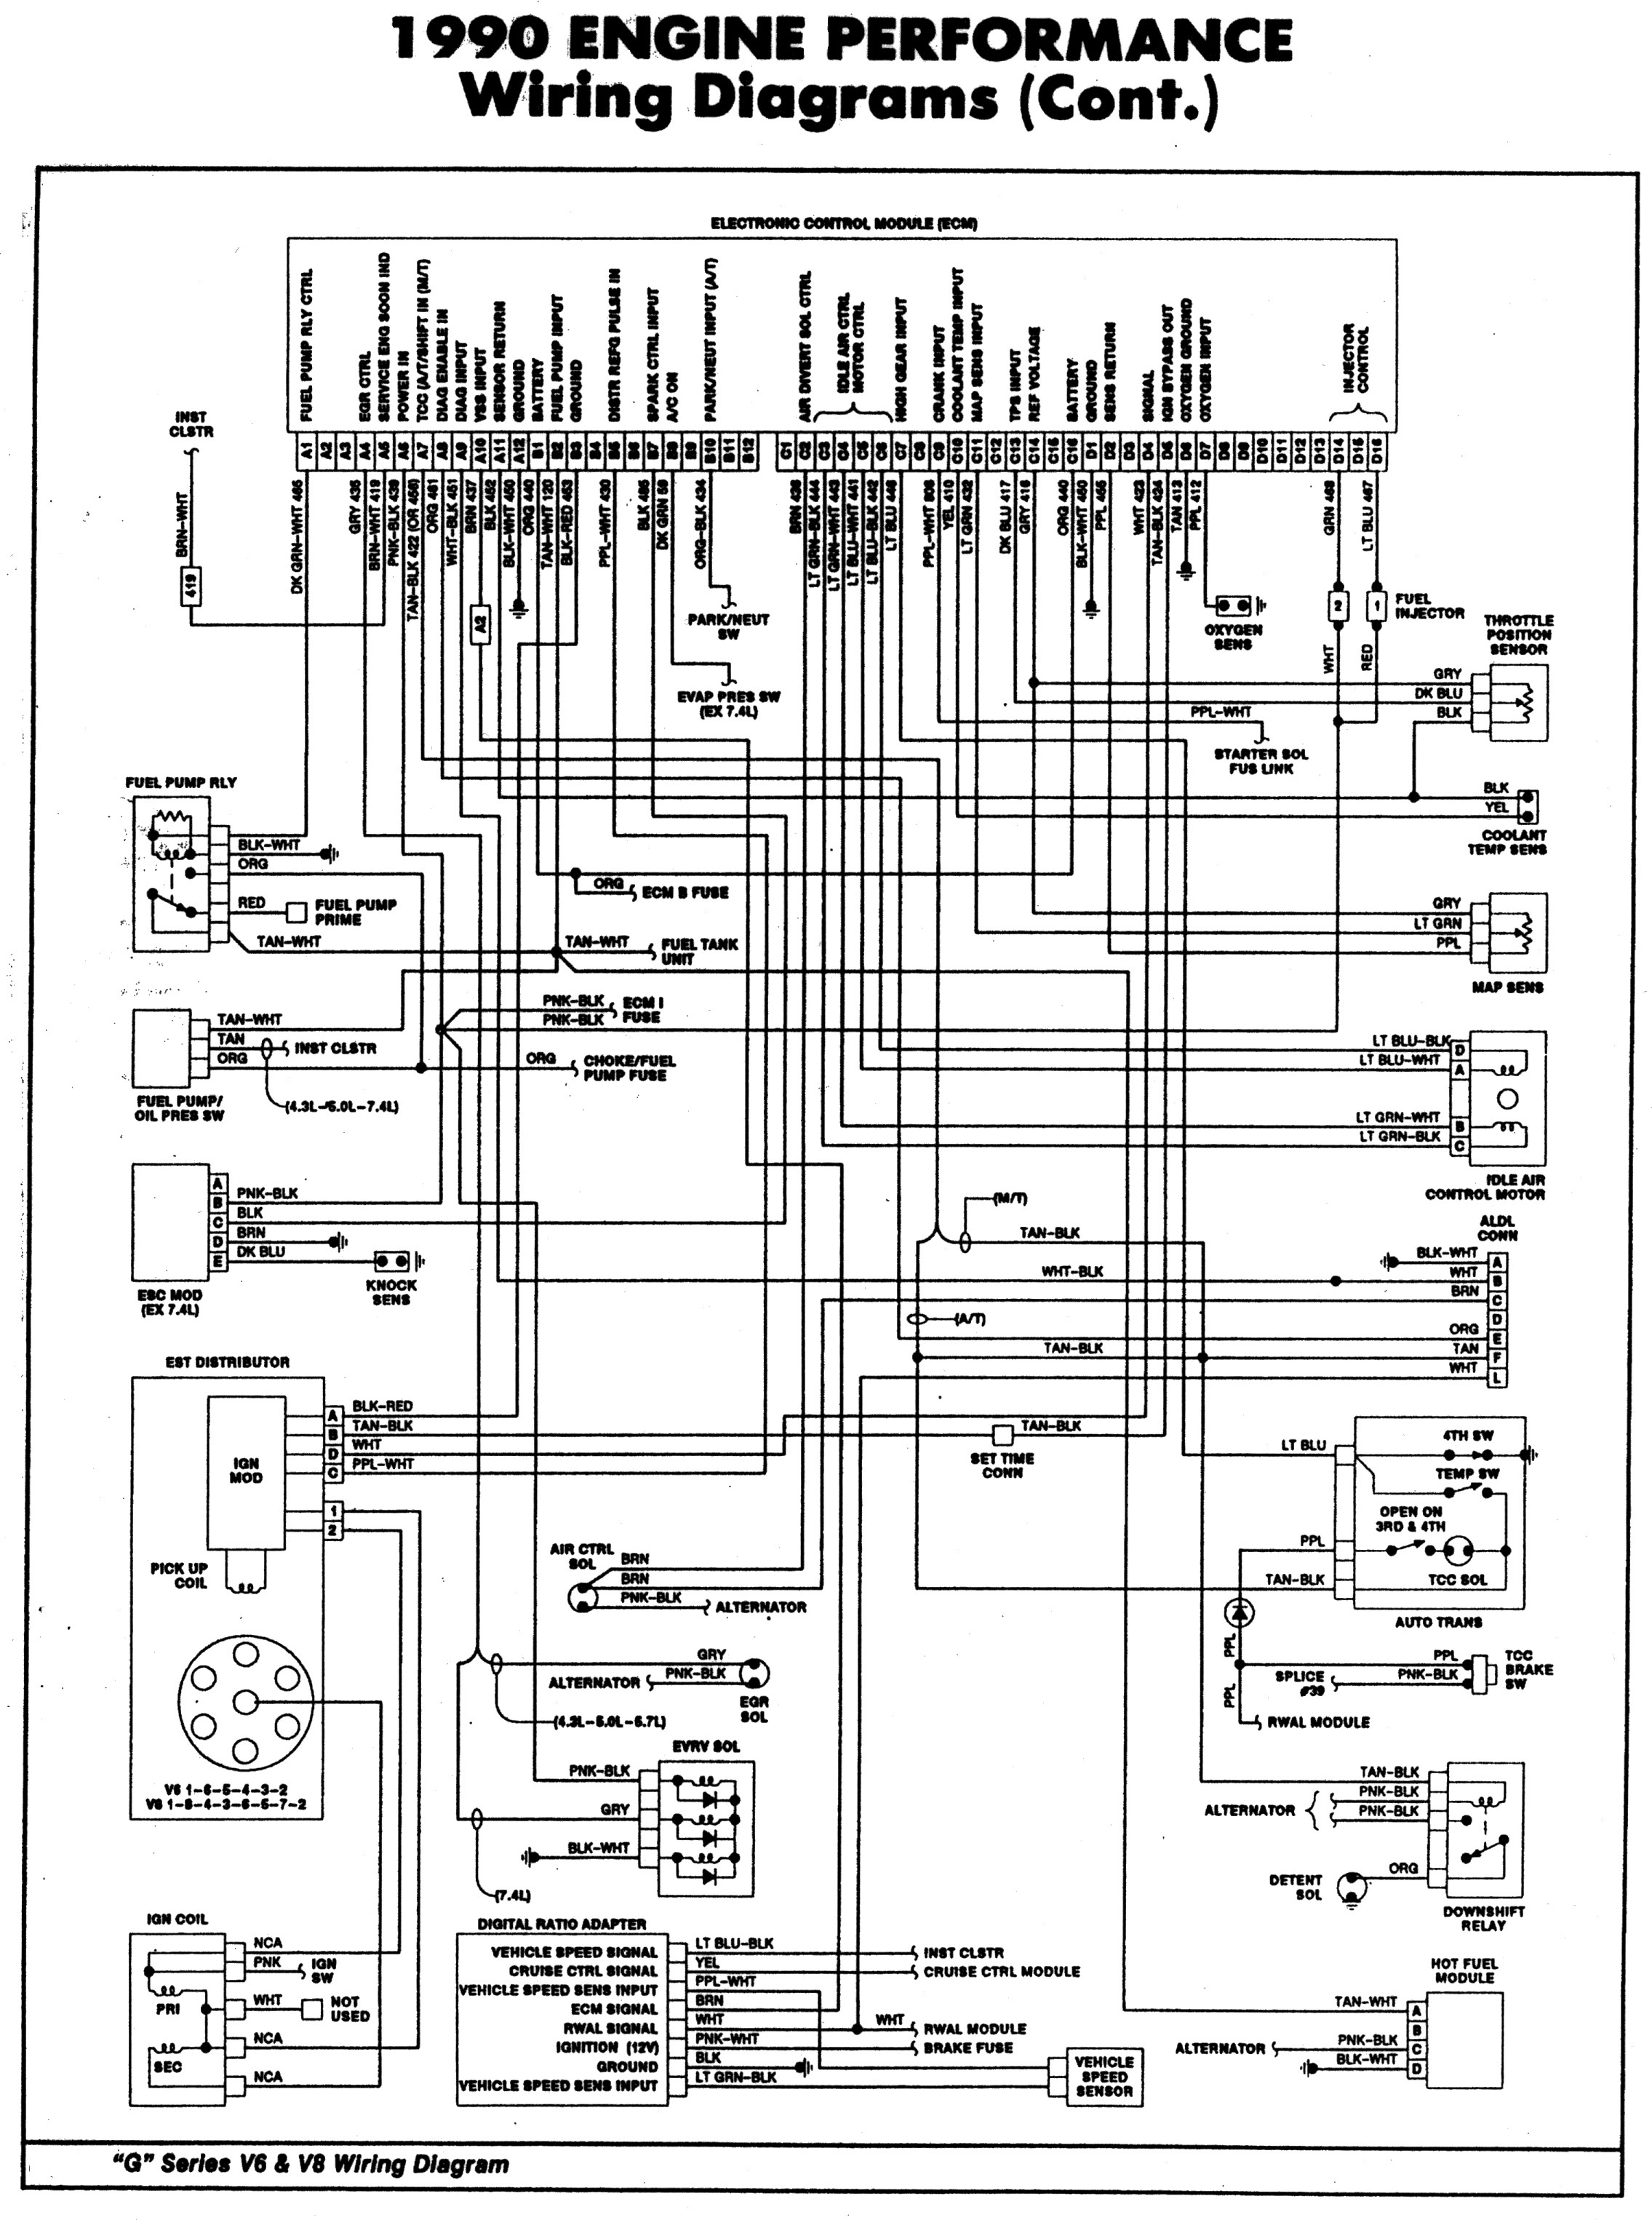 hight resolution of wiring diagram for 94 chevy pickup 1500 wiring diagram details wiring diagram for 94 chevy pickup 1500 transmission